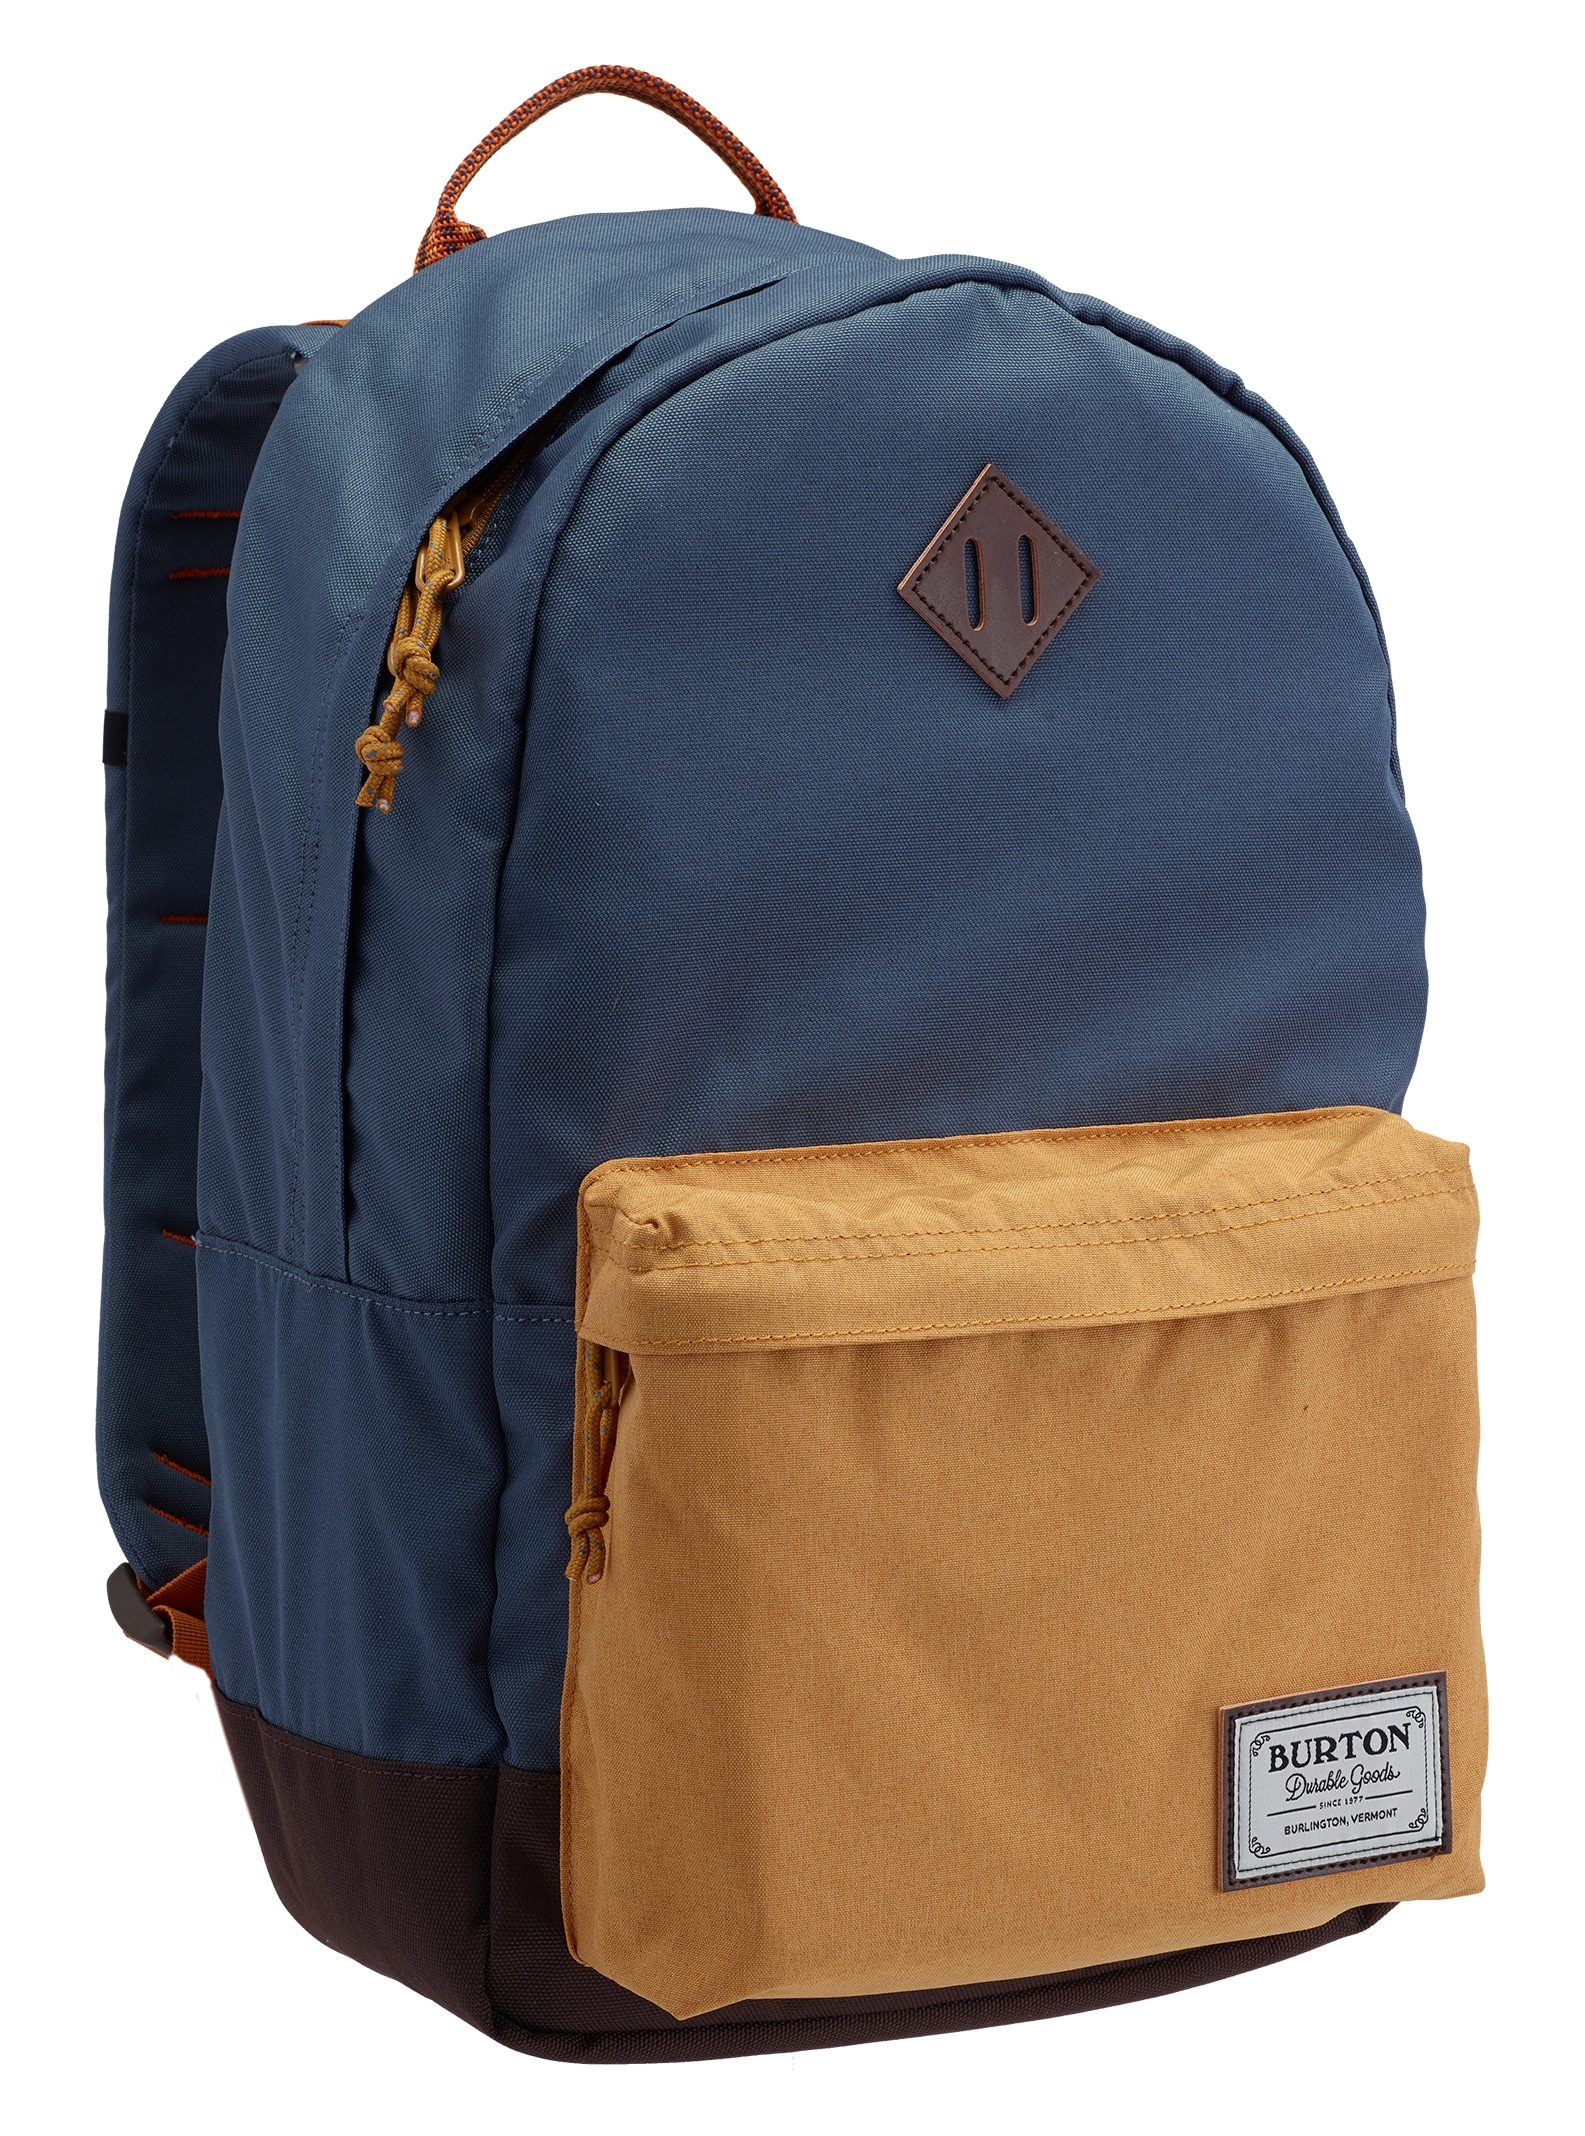 Burton - Sac à dos Kettle affichage en Washed Blue